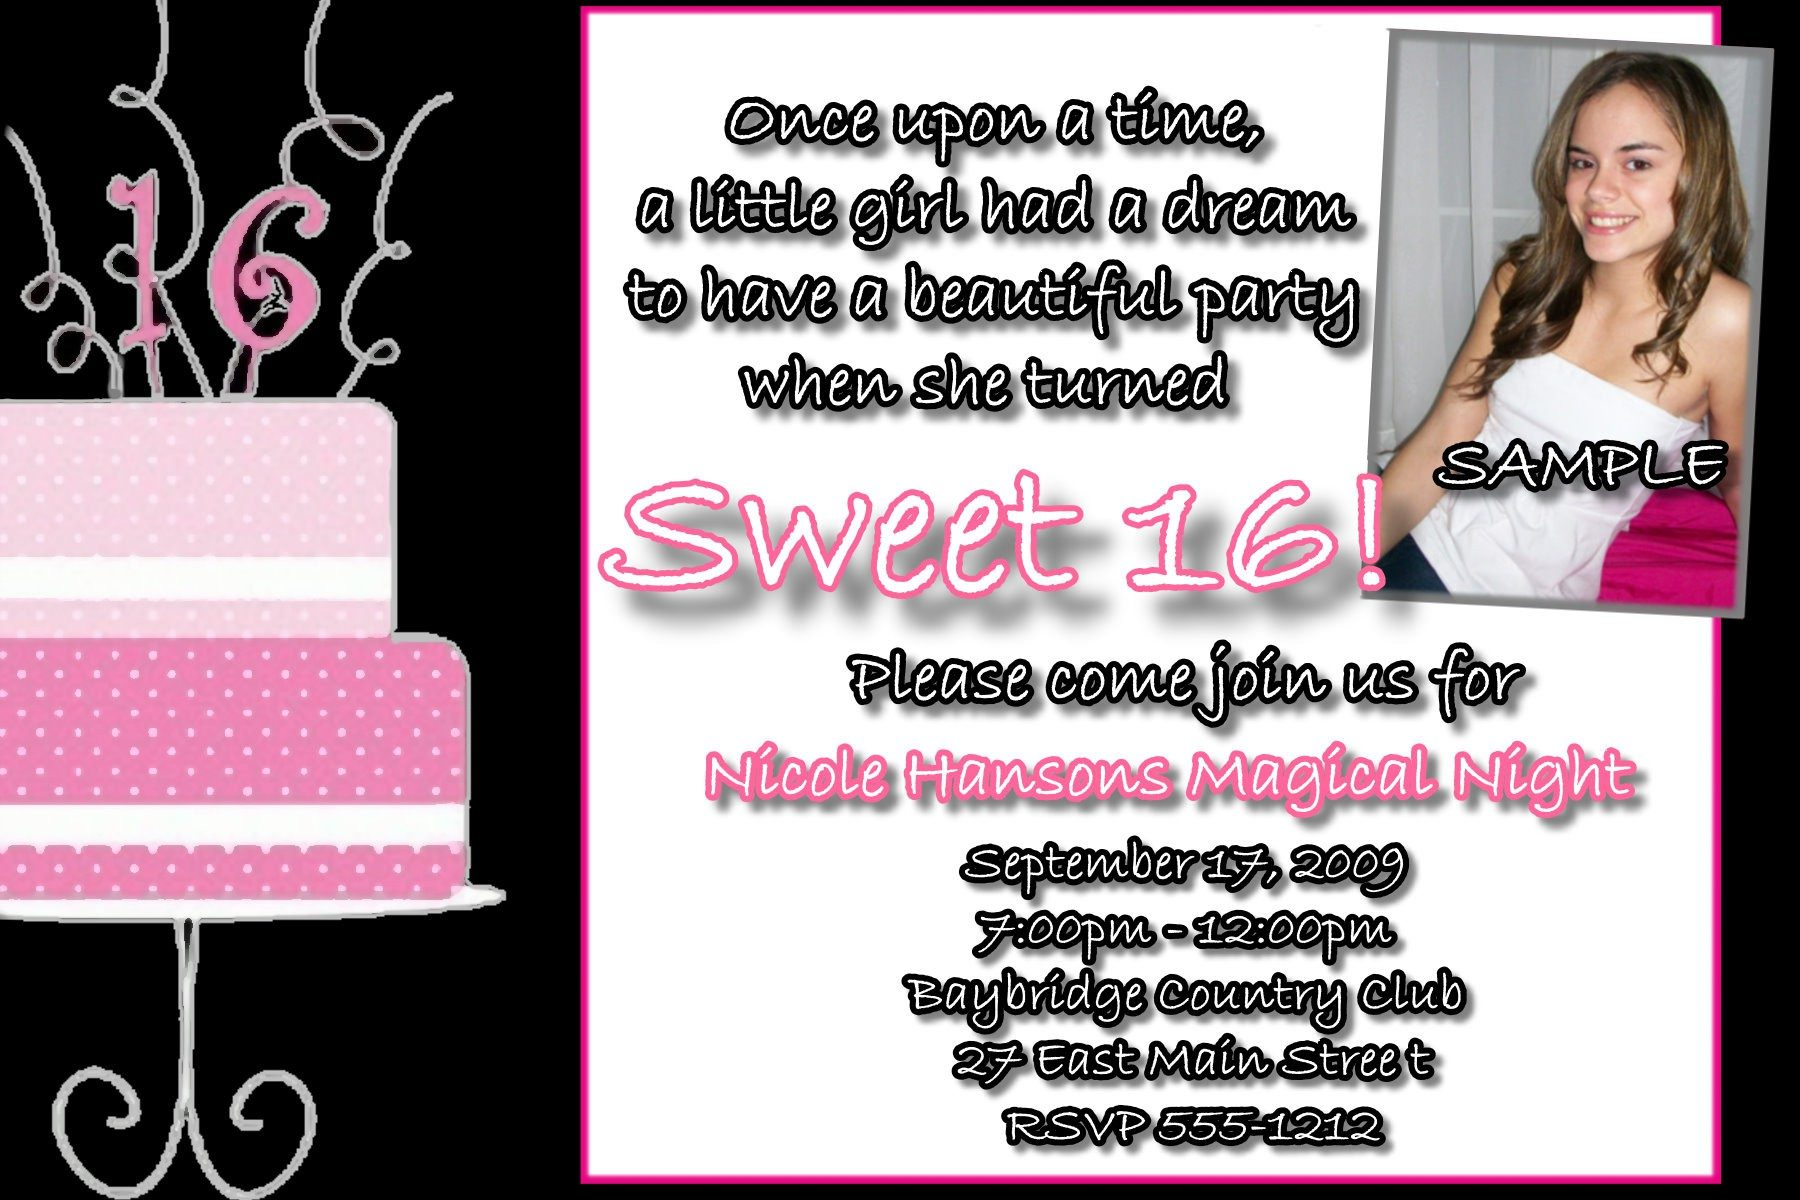 printable 16th birthday invitation templates ; 16th-birthday-invitations-templates-gallery-printable-sweet-16-invitation-templates-of-16th-birthday-invitations-templates